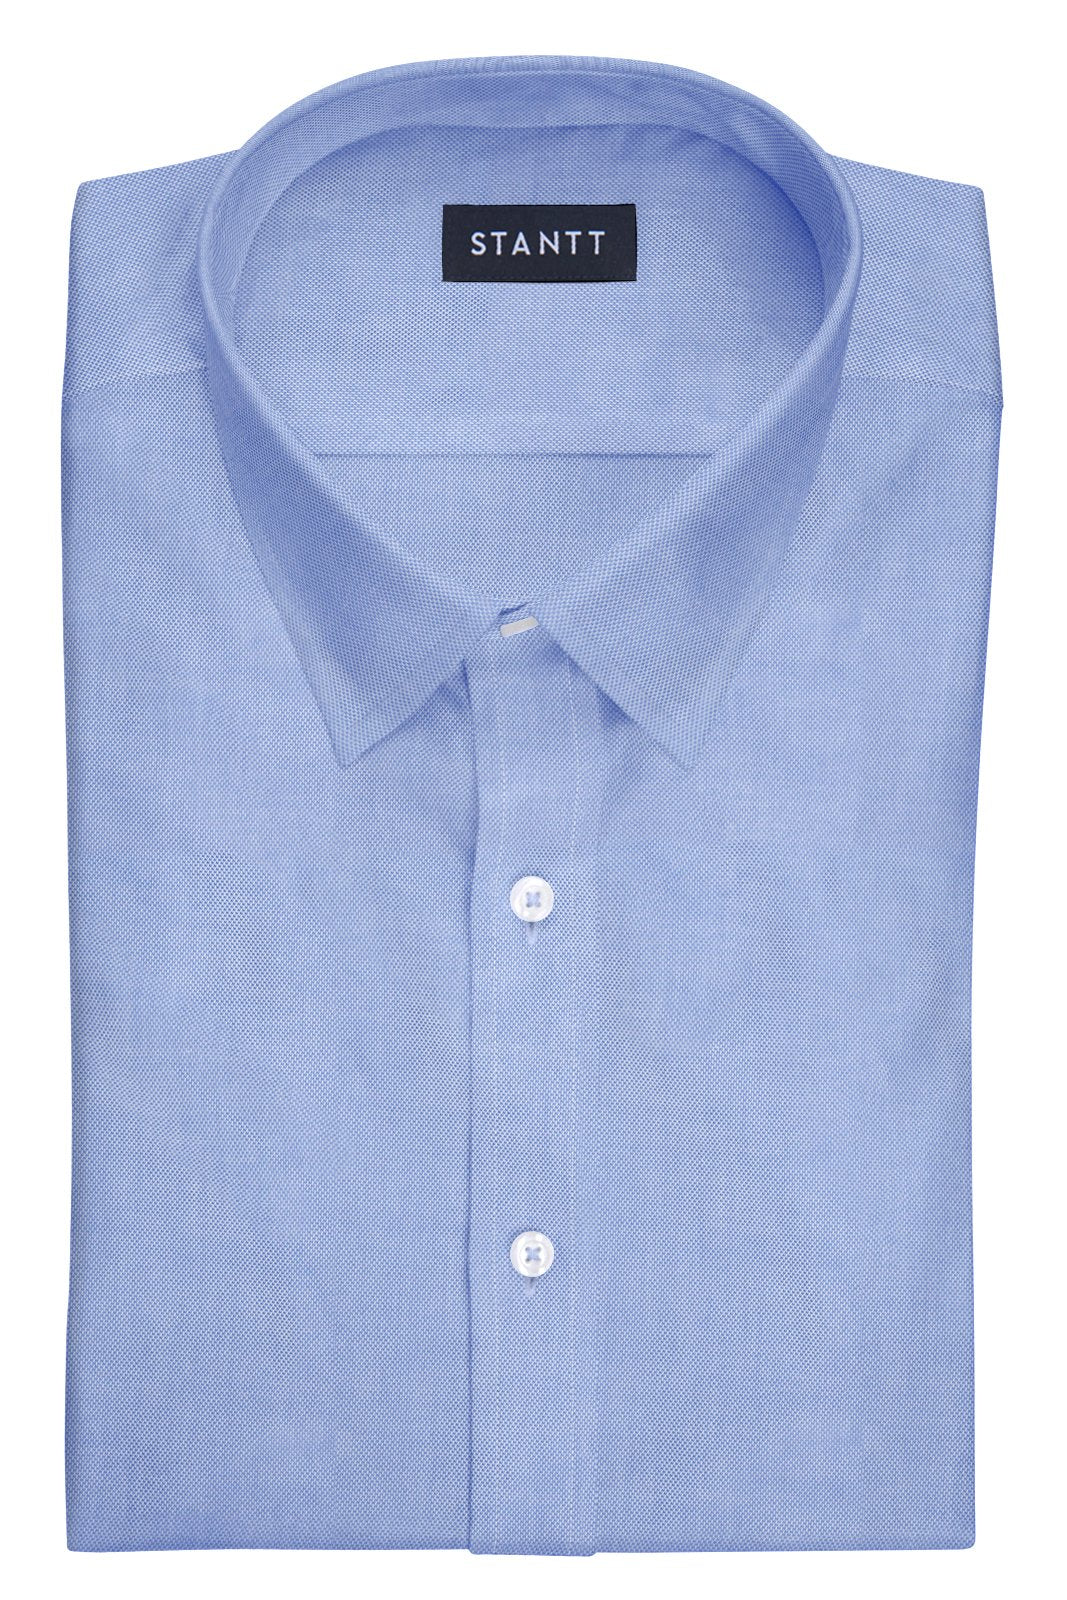 Blue Royal Oxford: Semi-Spread Collar, French Cuff